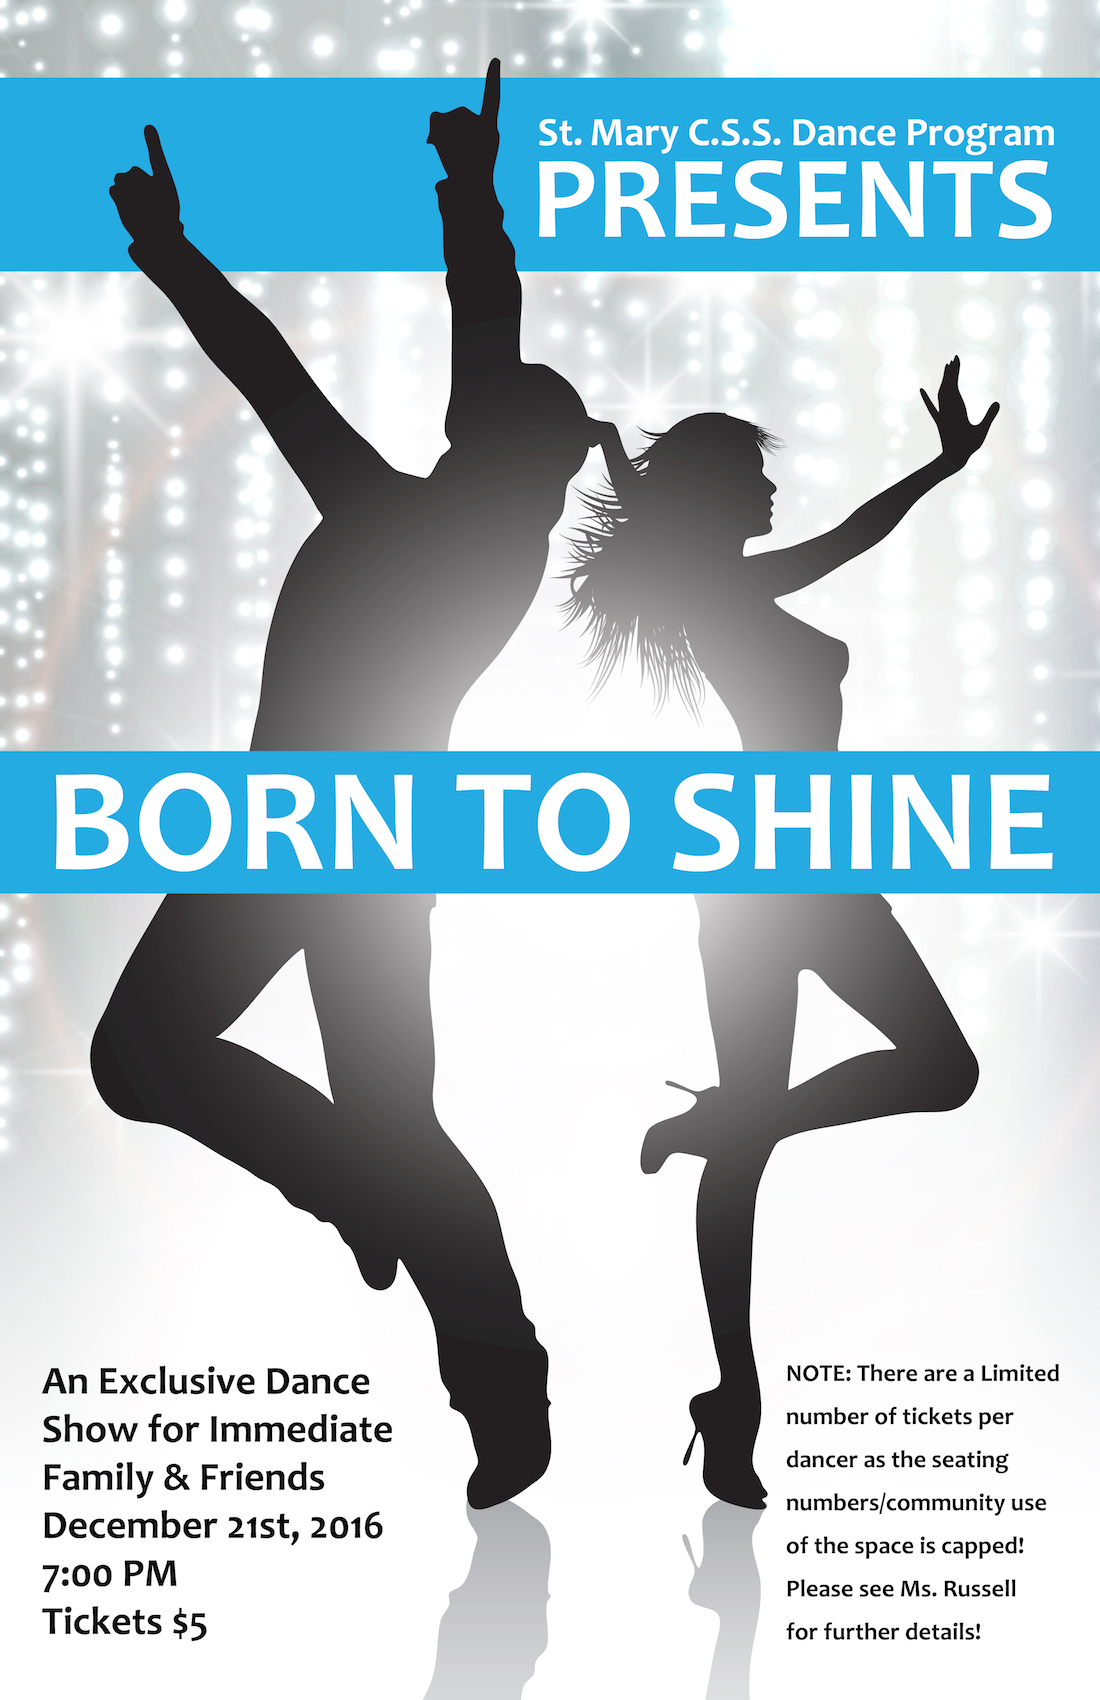 Born to Shine Dec 2016